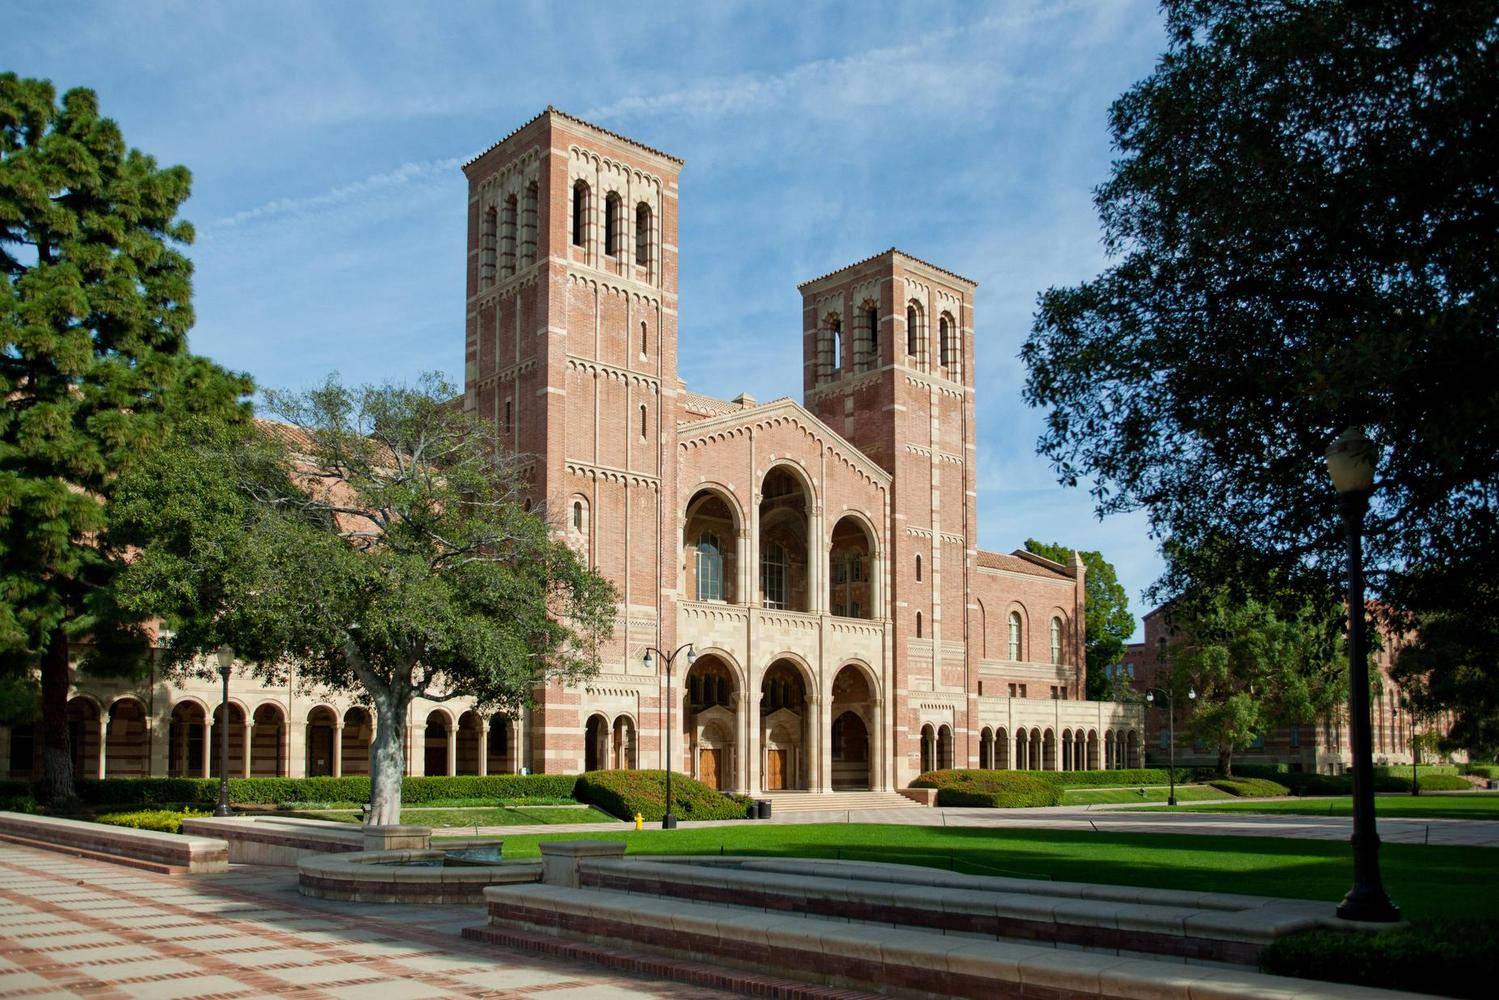 Which Of The 25 Best Ranked Colleges In The U.S. Have Architecture Programs ?,UCLA